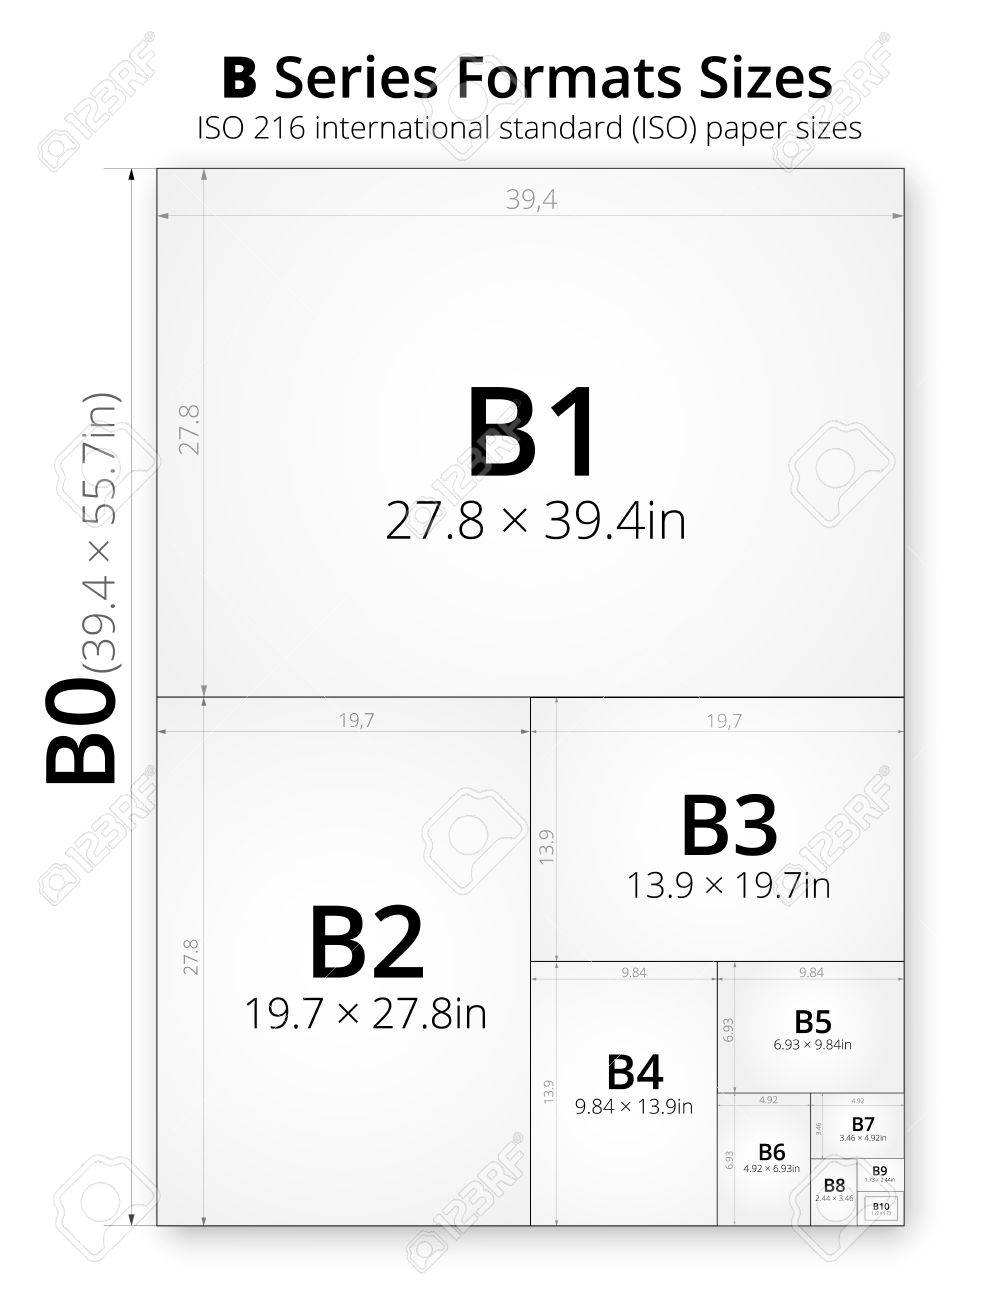 size of series b paper sheets comparison chart from b0 to b10 format in inches